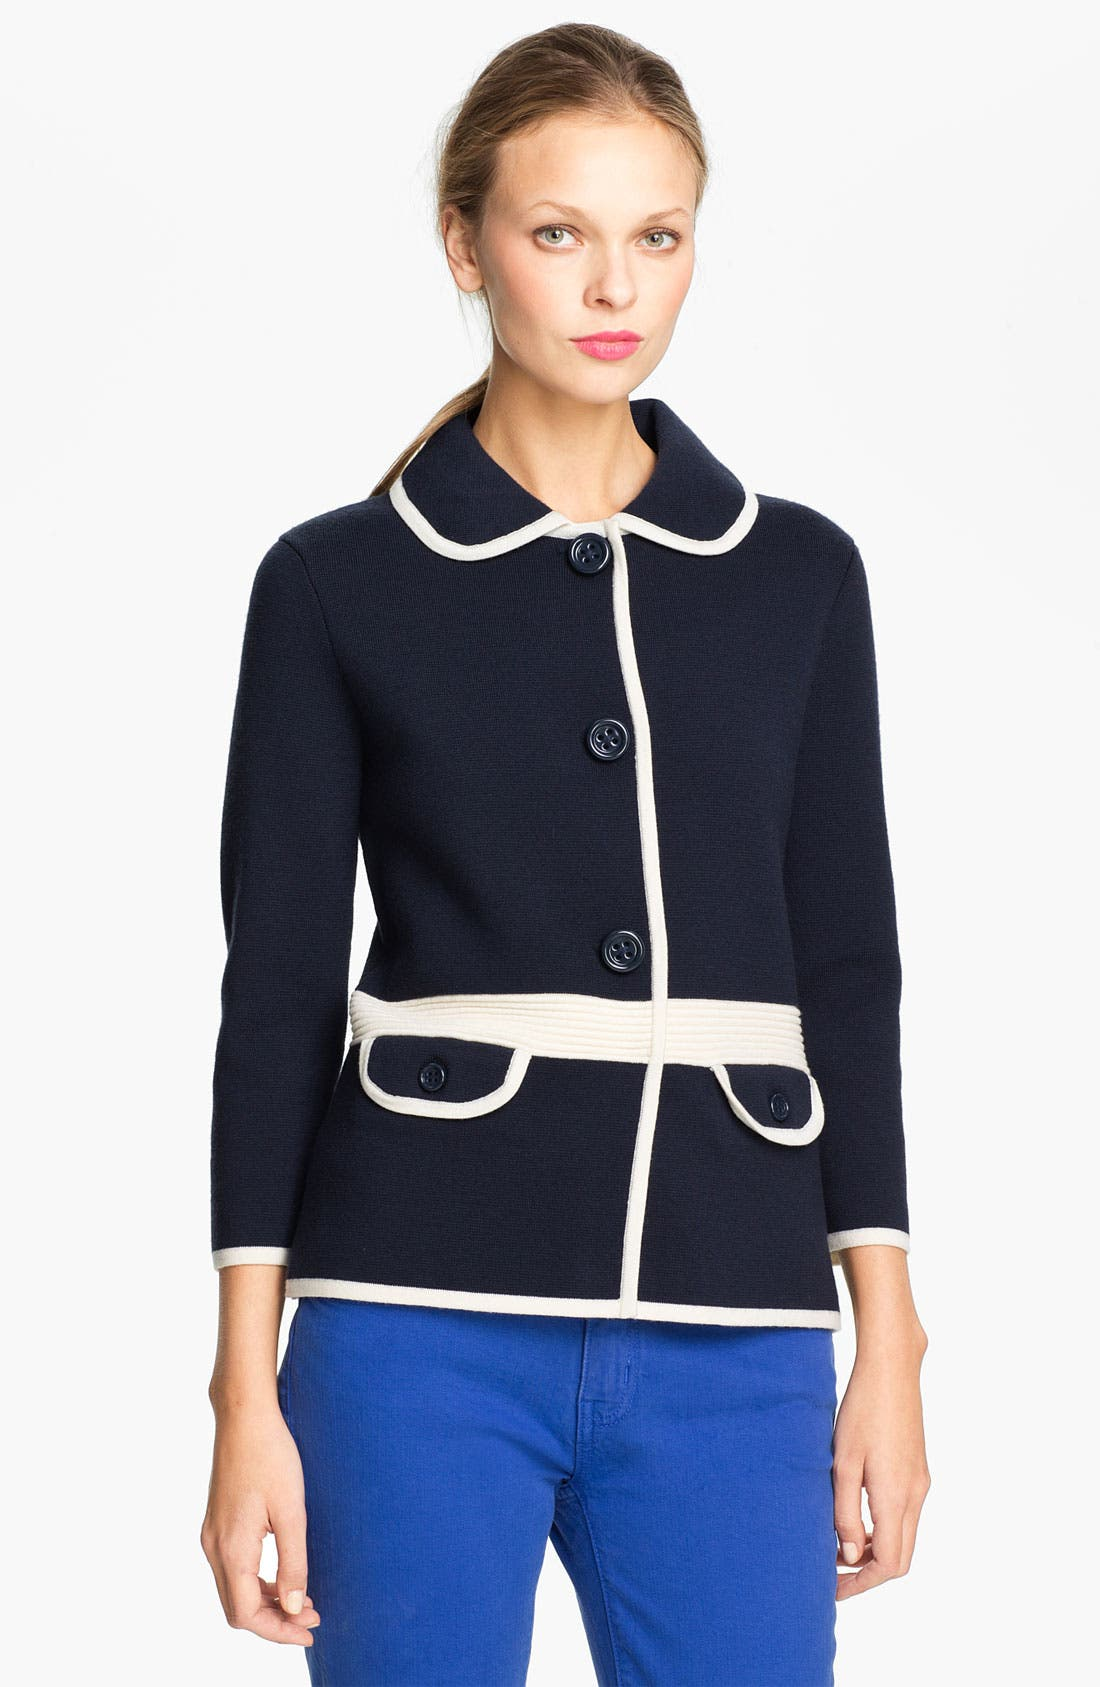 Main Image - kate spade new york 'mayson' sweater jacket